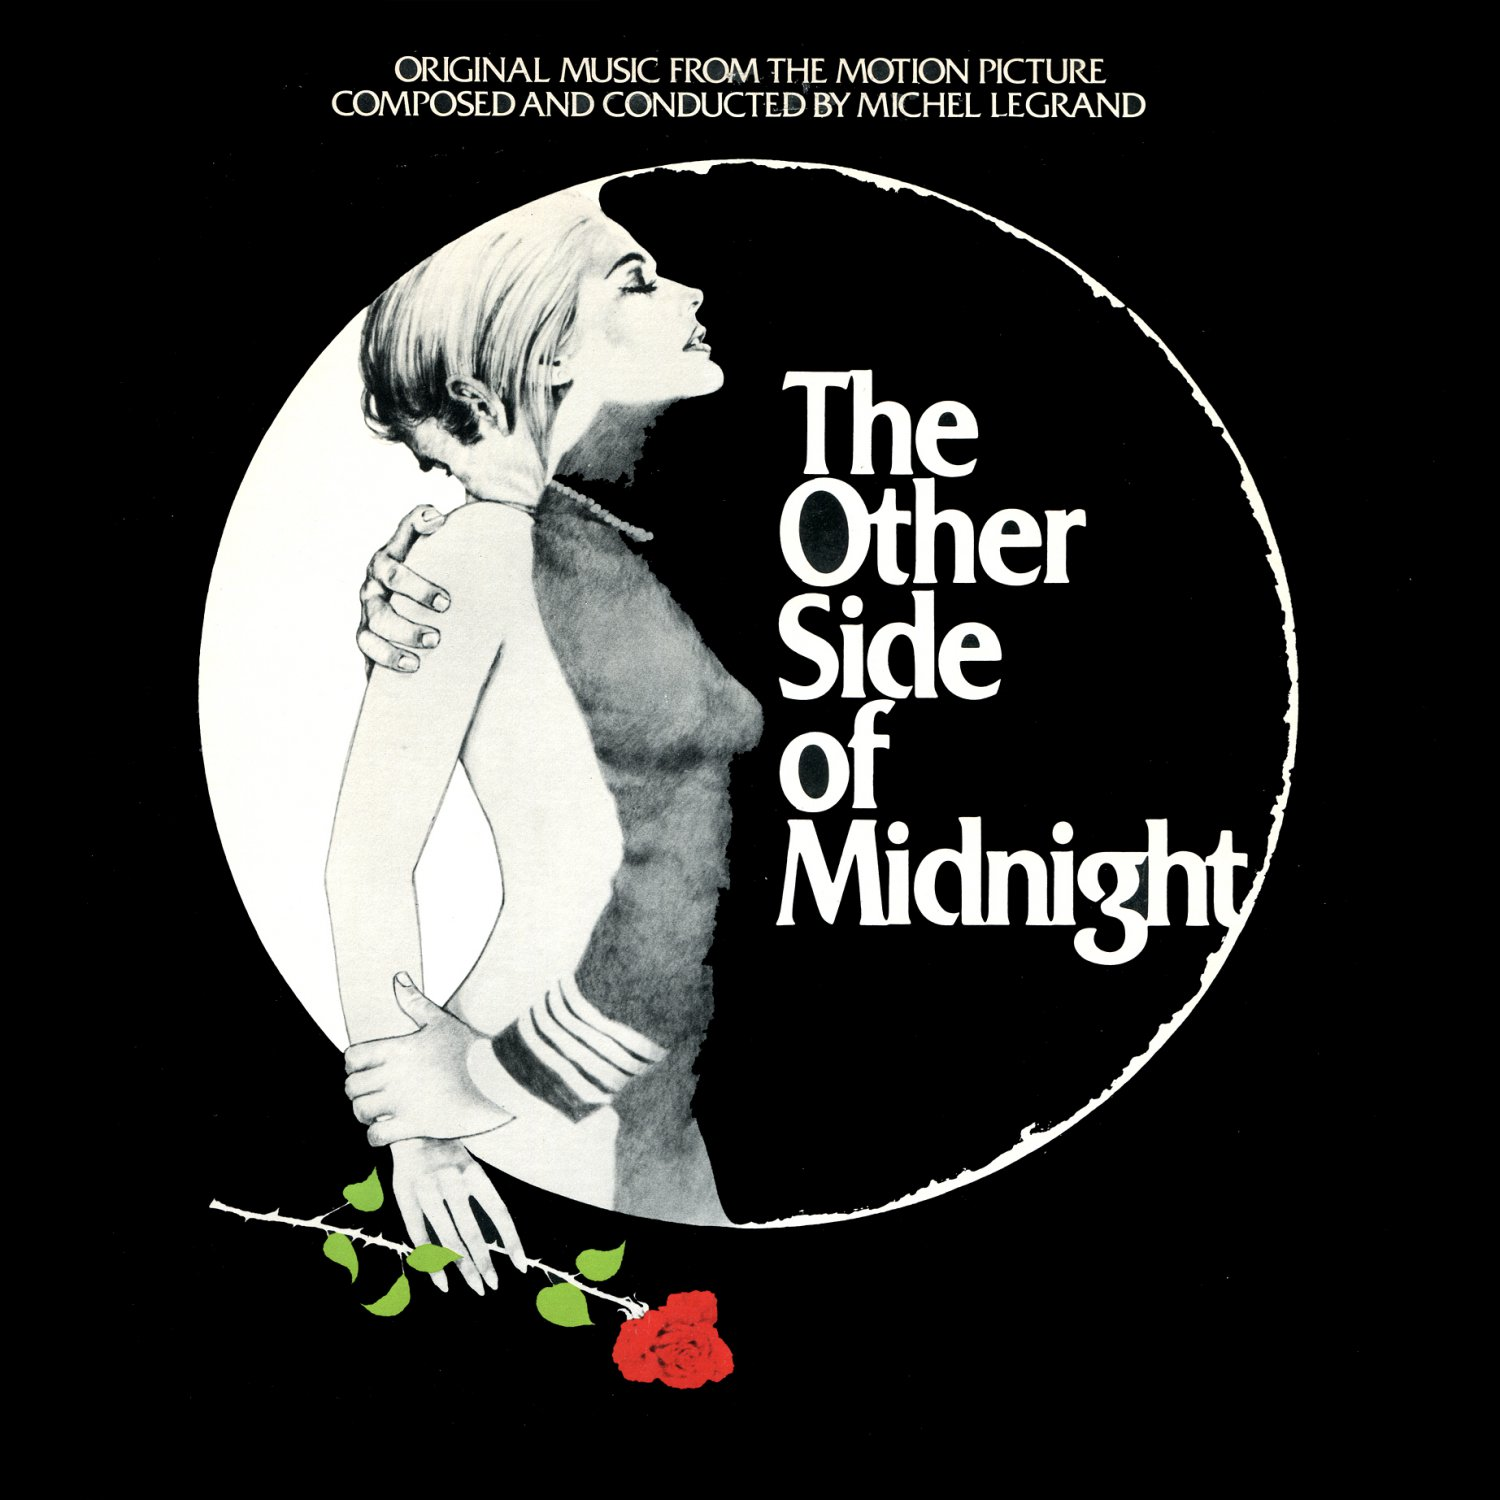 The Other Side Of Midnight - Original Soundtrack, Michel Legrand OST LP/CD